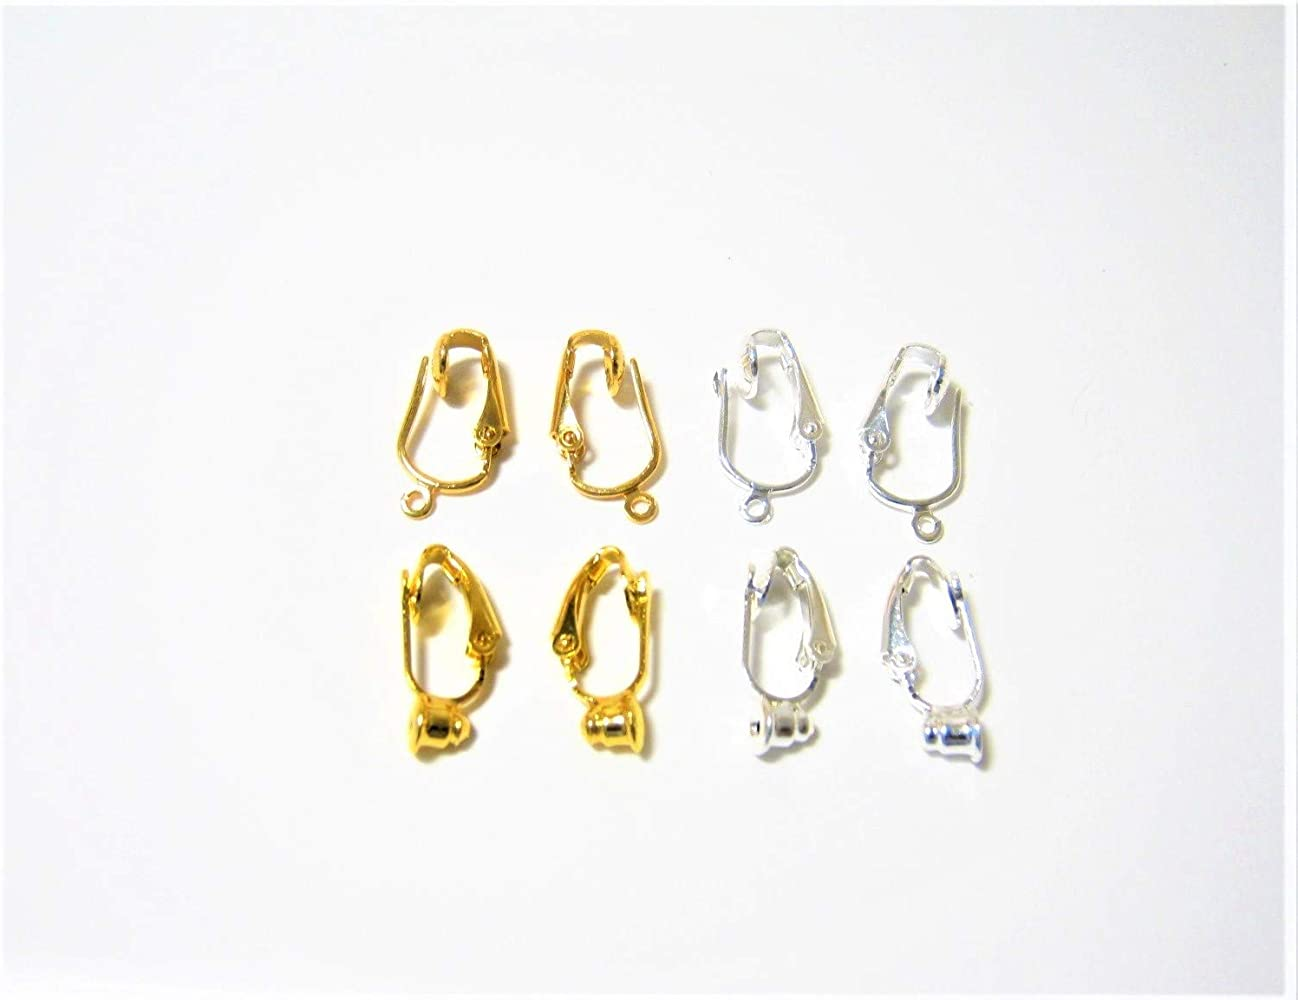 c5f012fd0 Earring Converters Clip on for Post and Drop Style Earrings-4 Pair Variety  Kit